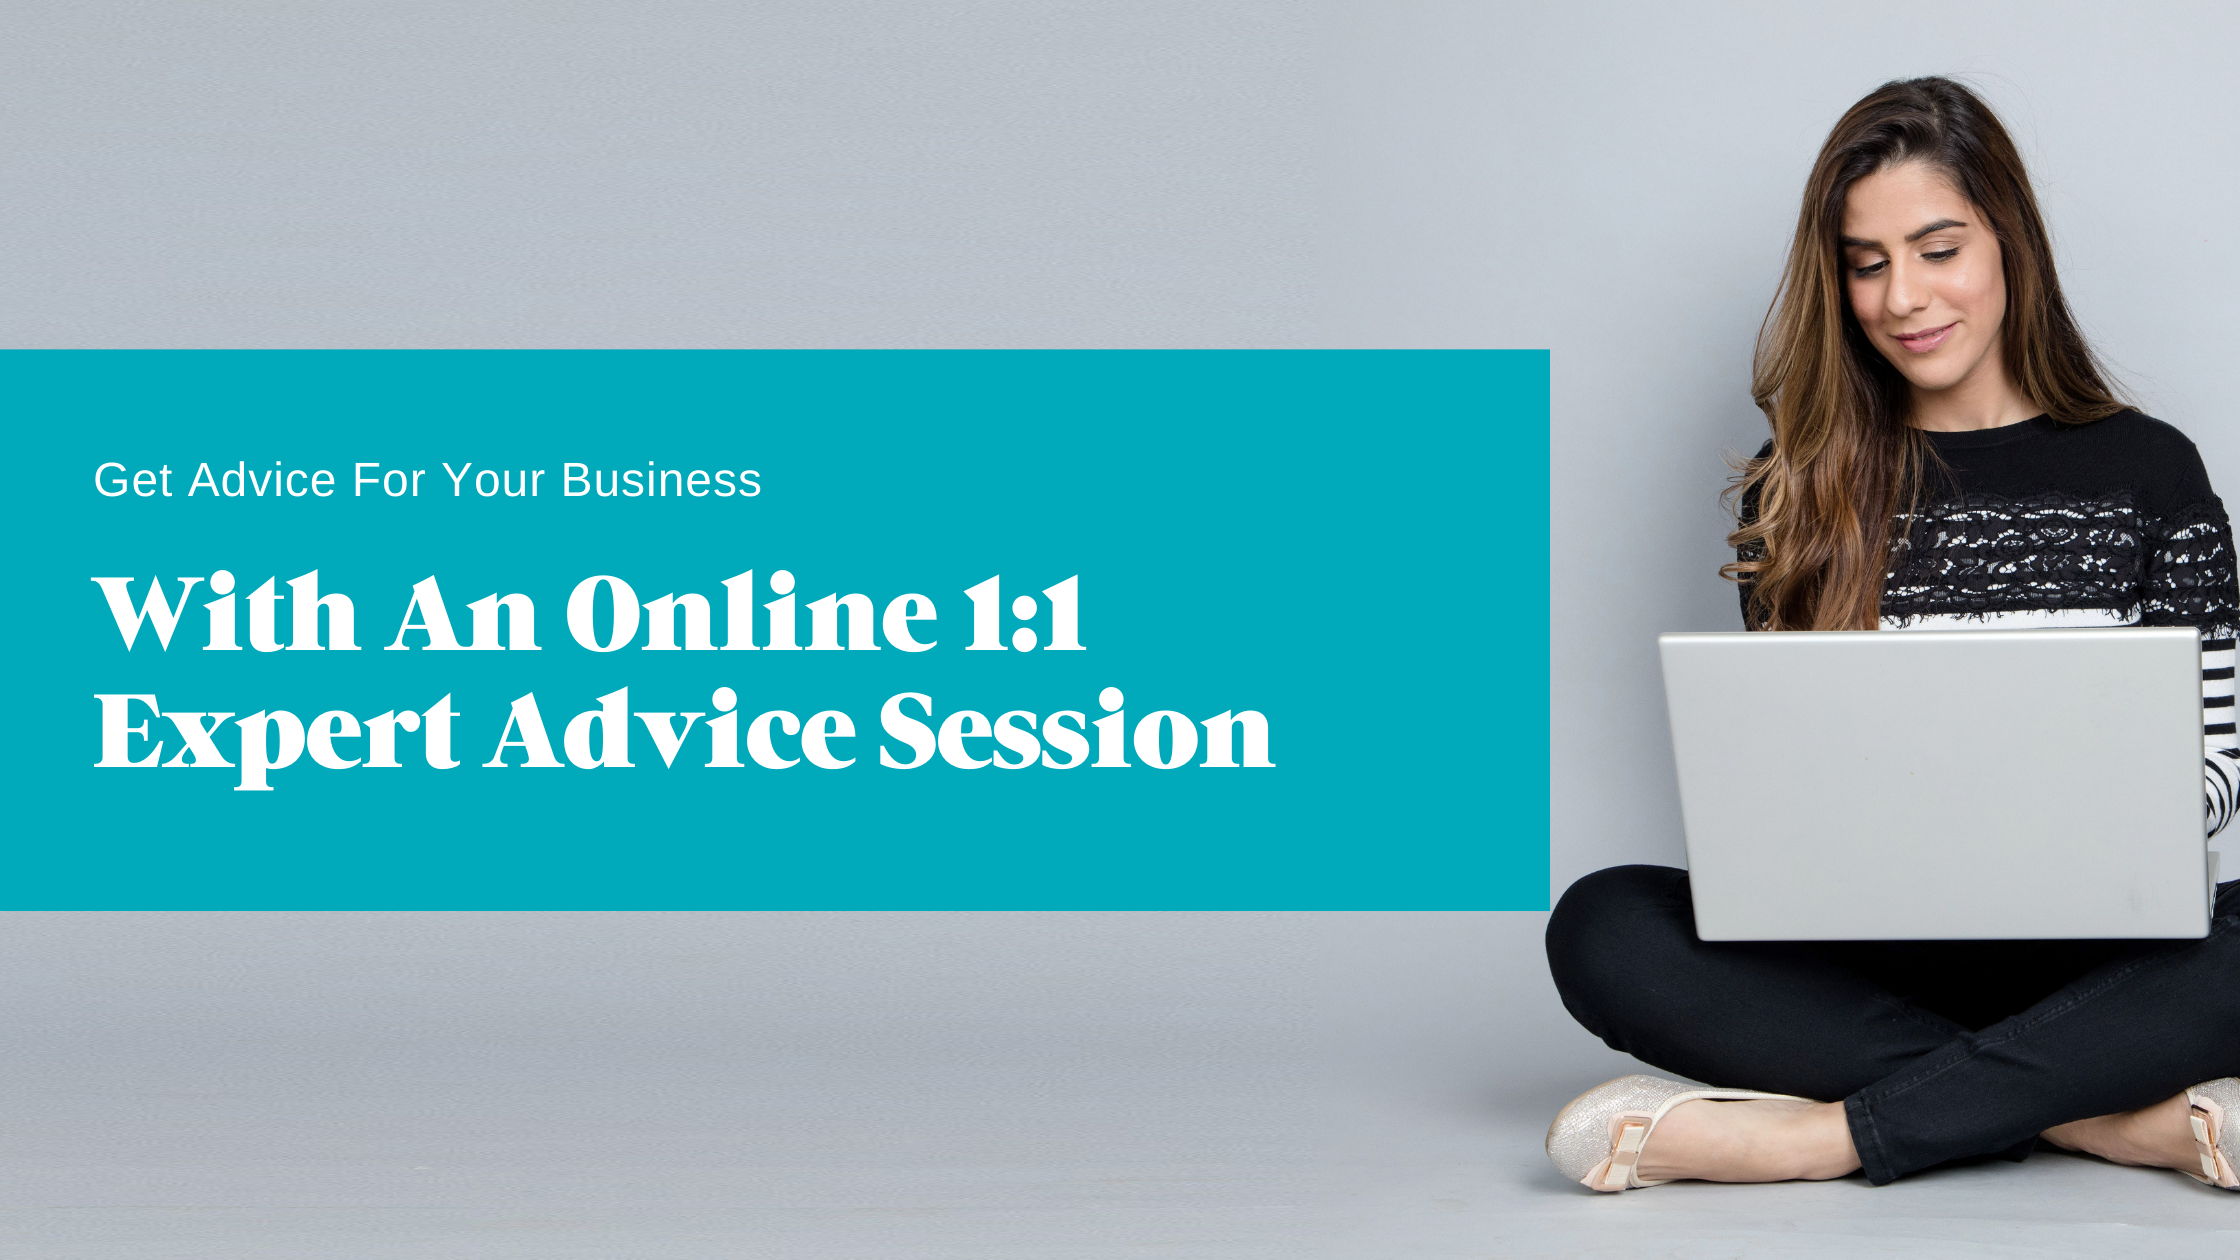 Get advice with a 1:1 expert session